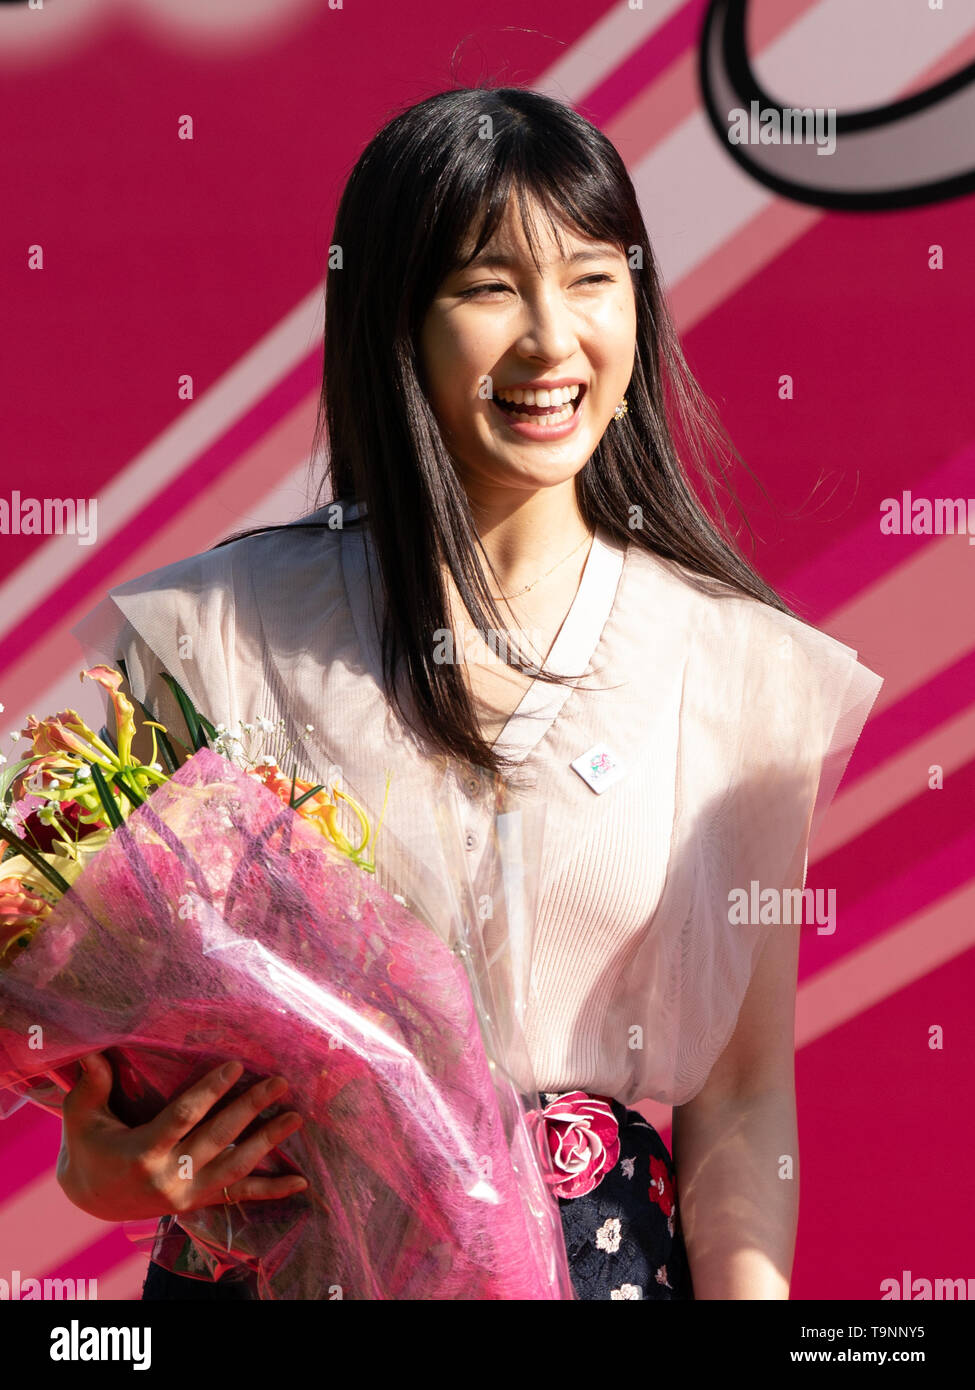 Japanese actress Tao Tsuchiya attends winning ceremony of the 80th Japanese Oaks (G1 2400m) at Tokyo Racecourse, Tokyo, Japan on 19 May 2019. Credit: Motoo Naka/AFLO/Alamy Live News - Stock Image